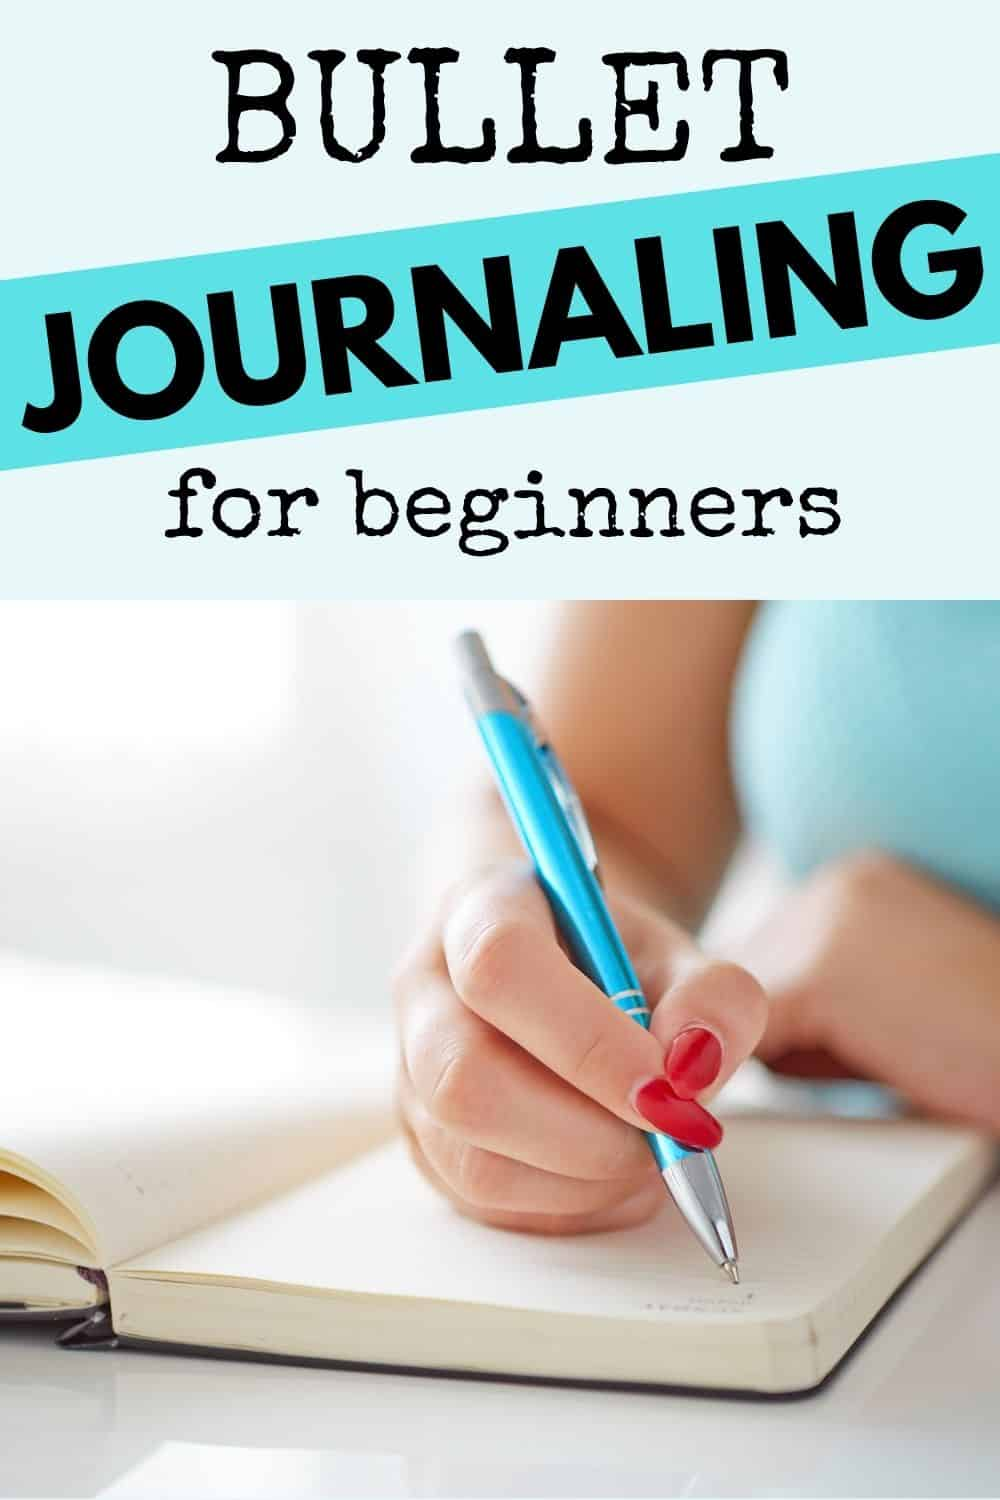 What do you need to get started with bullet journaling? These bullet journal ideas are perfect for the beginner looking for the right tools on a budget to get started quickly.